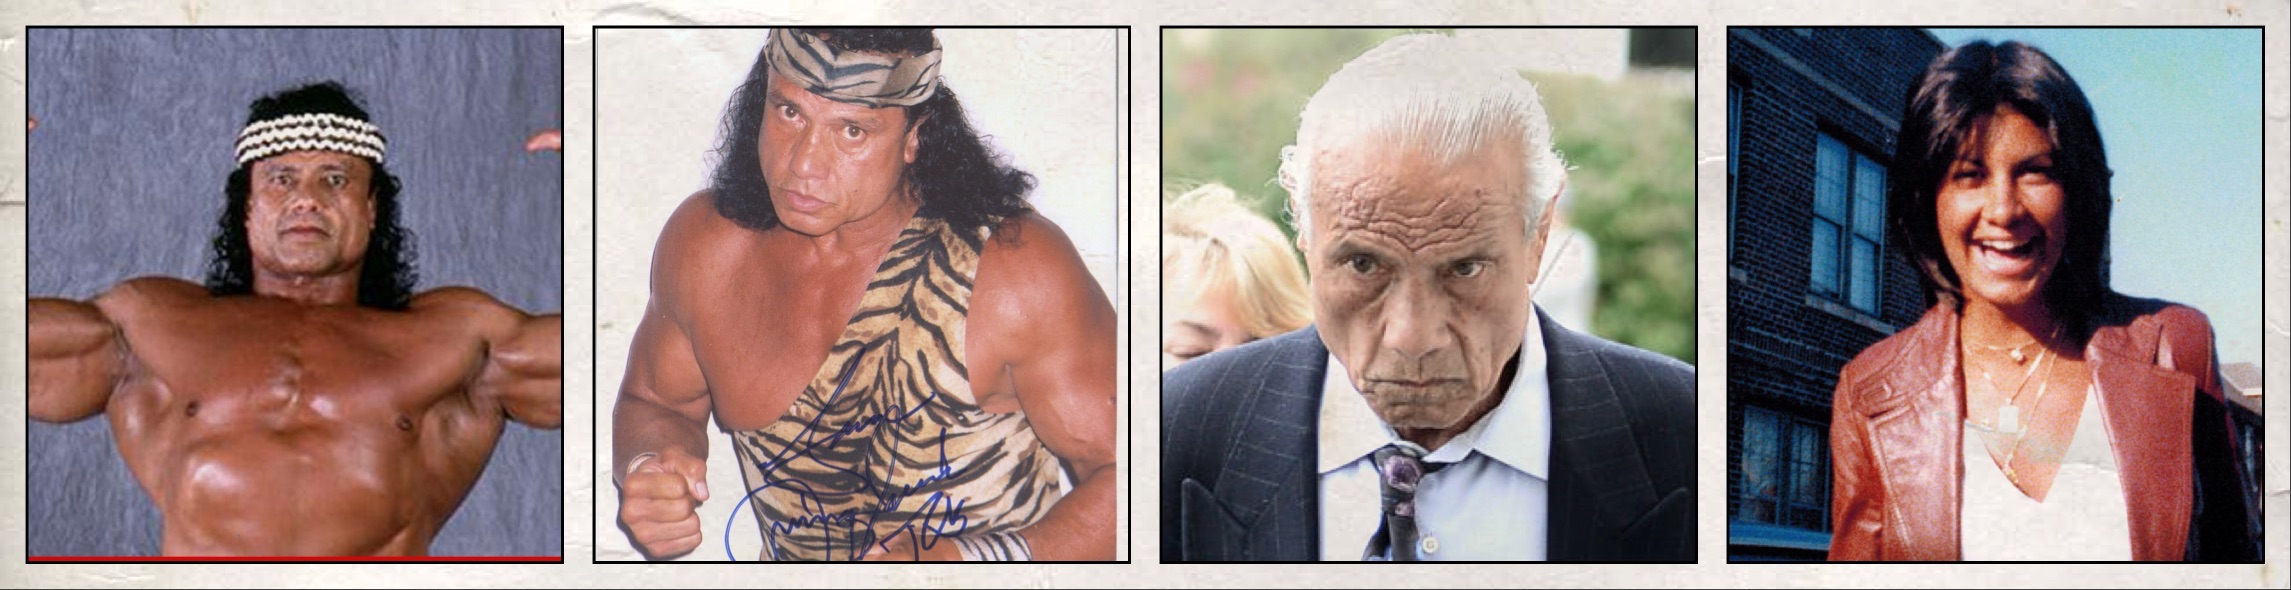 "Jimmy snuka muscled up bodybuilder, jimmy snuka ""stero-type jungle savage, jimmy snuka dying old man, and the real victim of the story, nancy argentino- murder victim that never got justice."